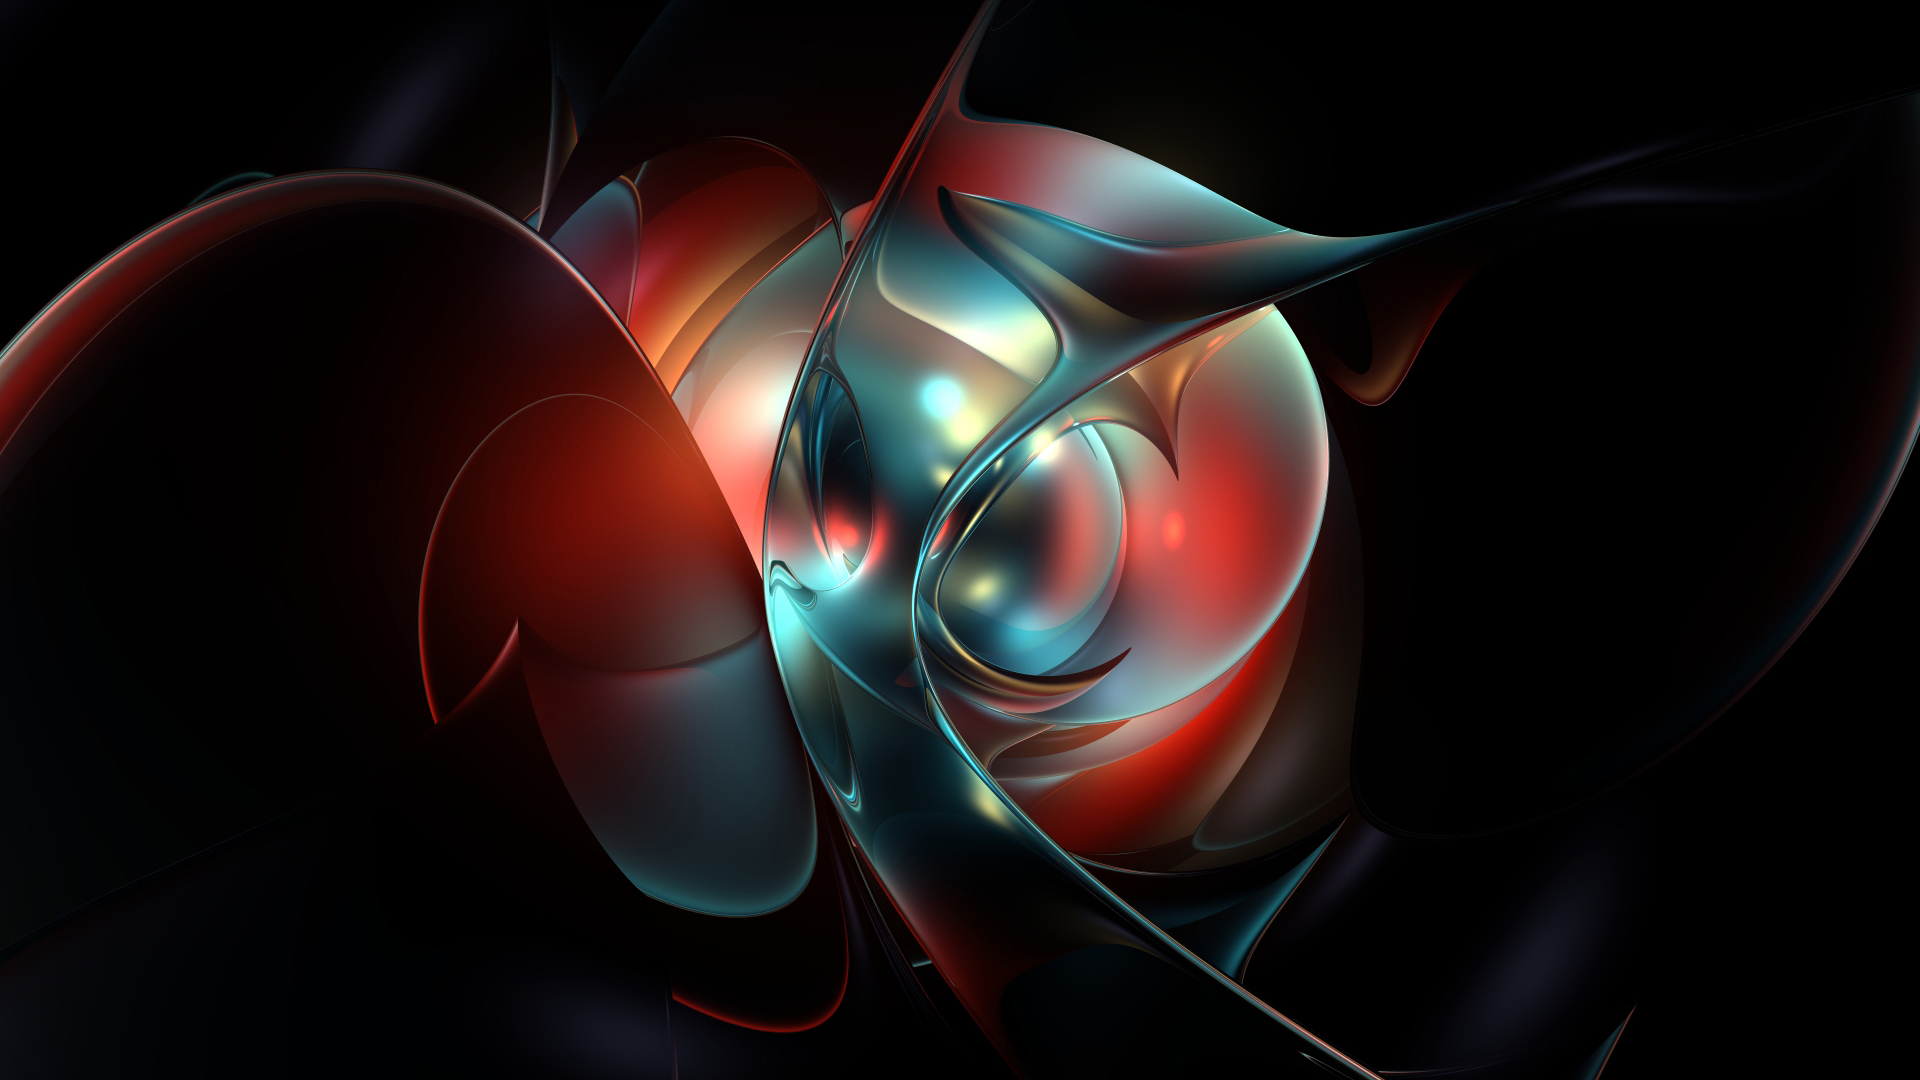 3D Abstract 158.37 Kb